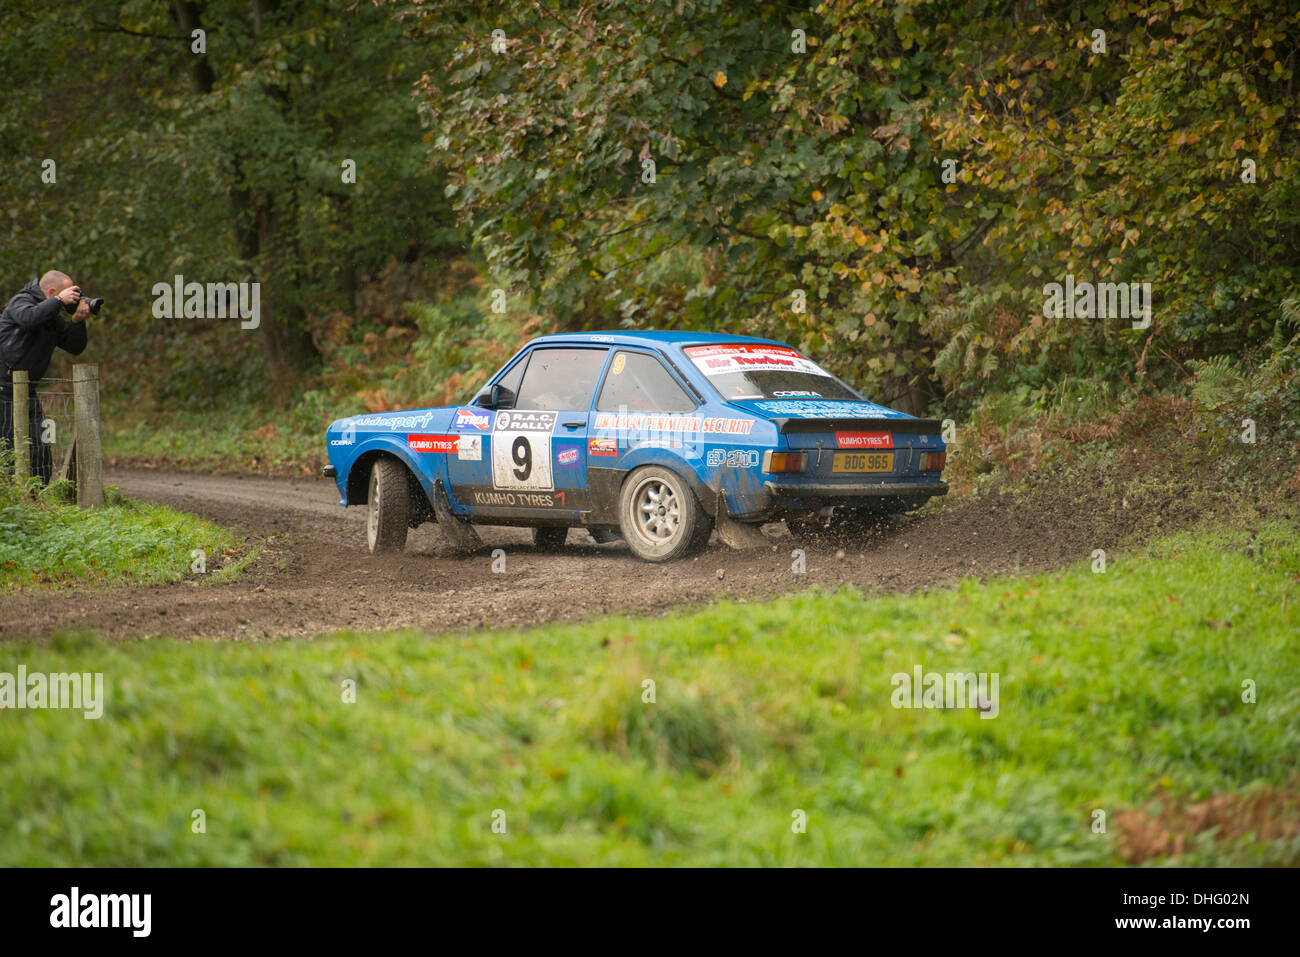 Duncombe Park, North Yorkshire, UK . 09th Nov, 2013. UK RAC Rally Duncombe Park Special Stage 9. Alan McDowall and Gavin Heseltine  from North Humberside Motor Club in classD5 (for historic cars registered between 1975 and 1981) in a Ford Escort RS1800 Credit:  Geoff Tweddle/Alamy Live News - Stock Image